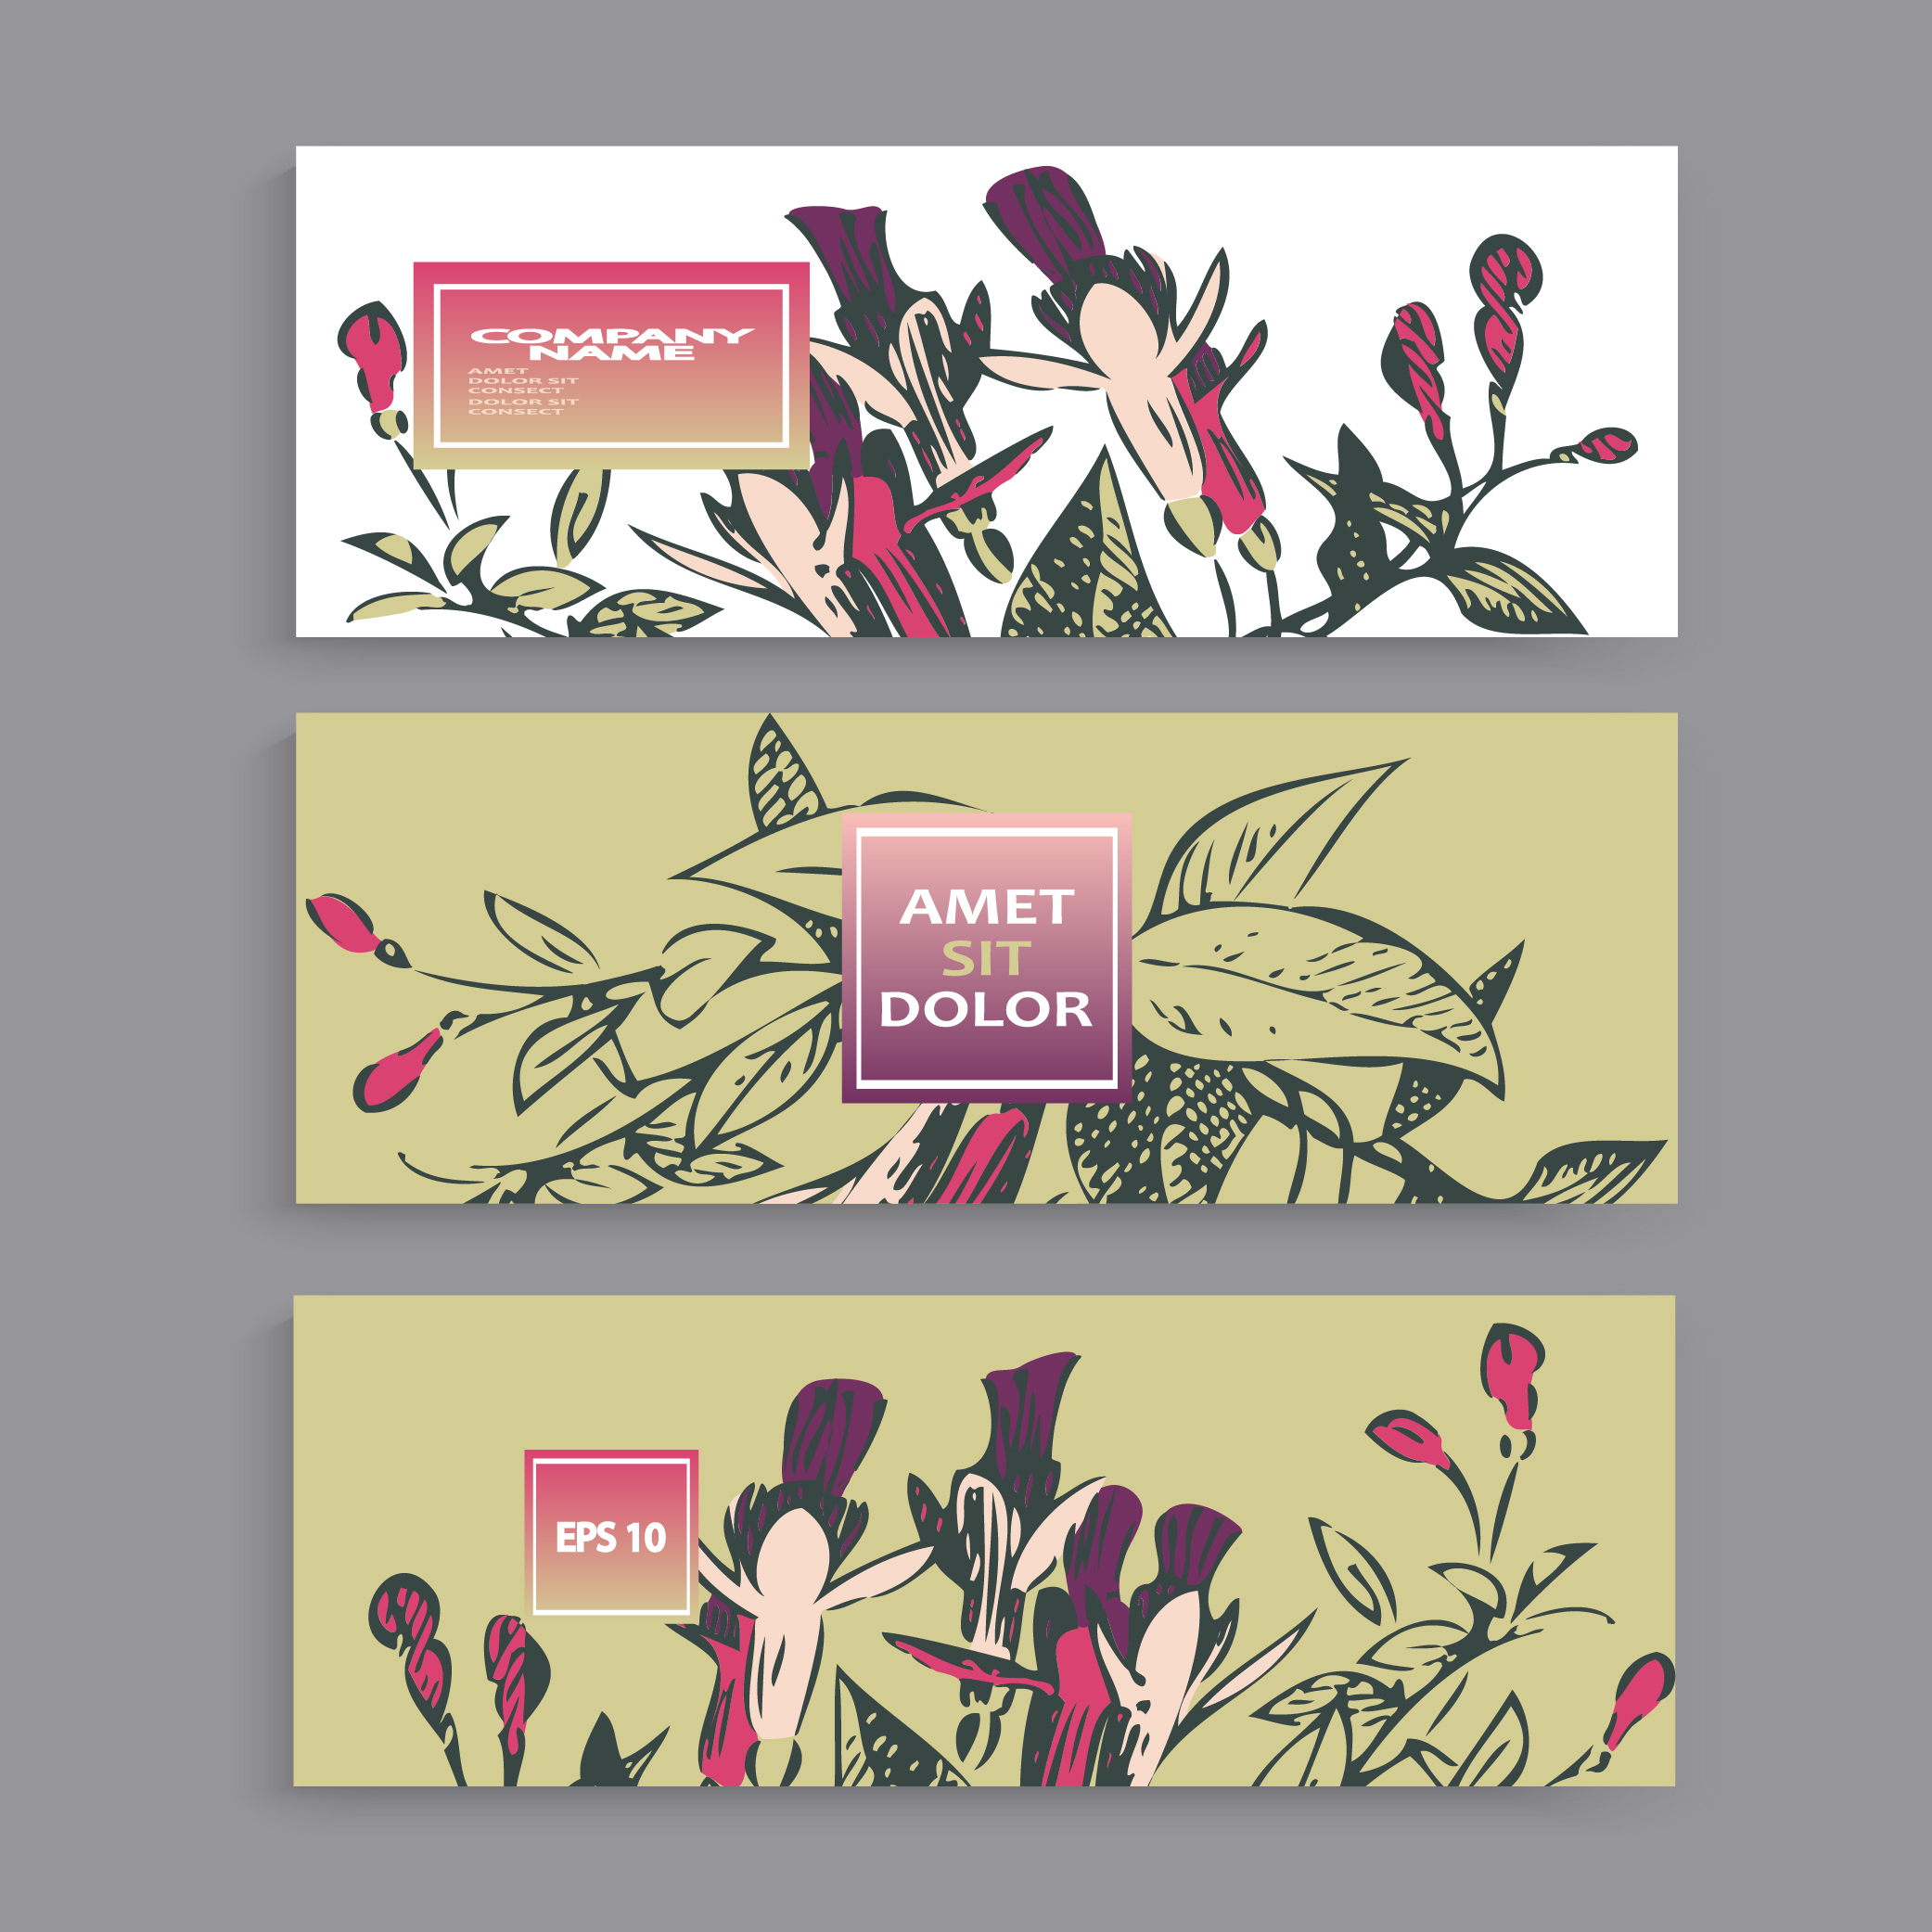 Fuchsia flowers wedding invitation card template design example image 4